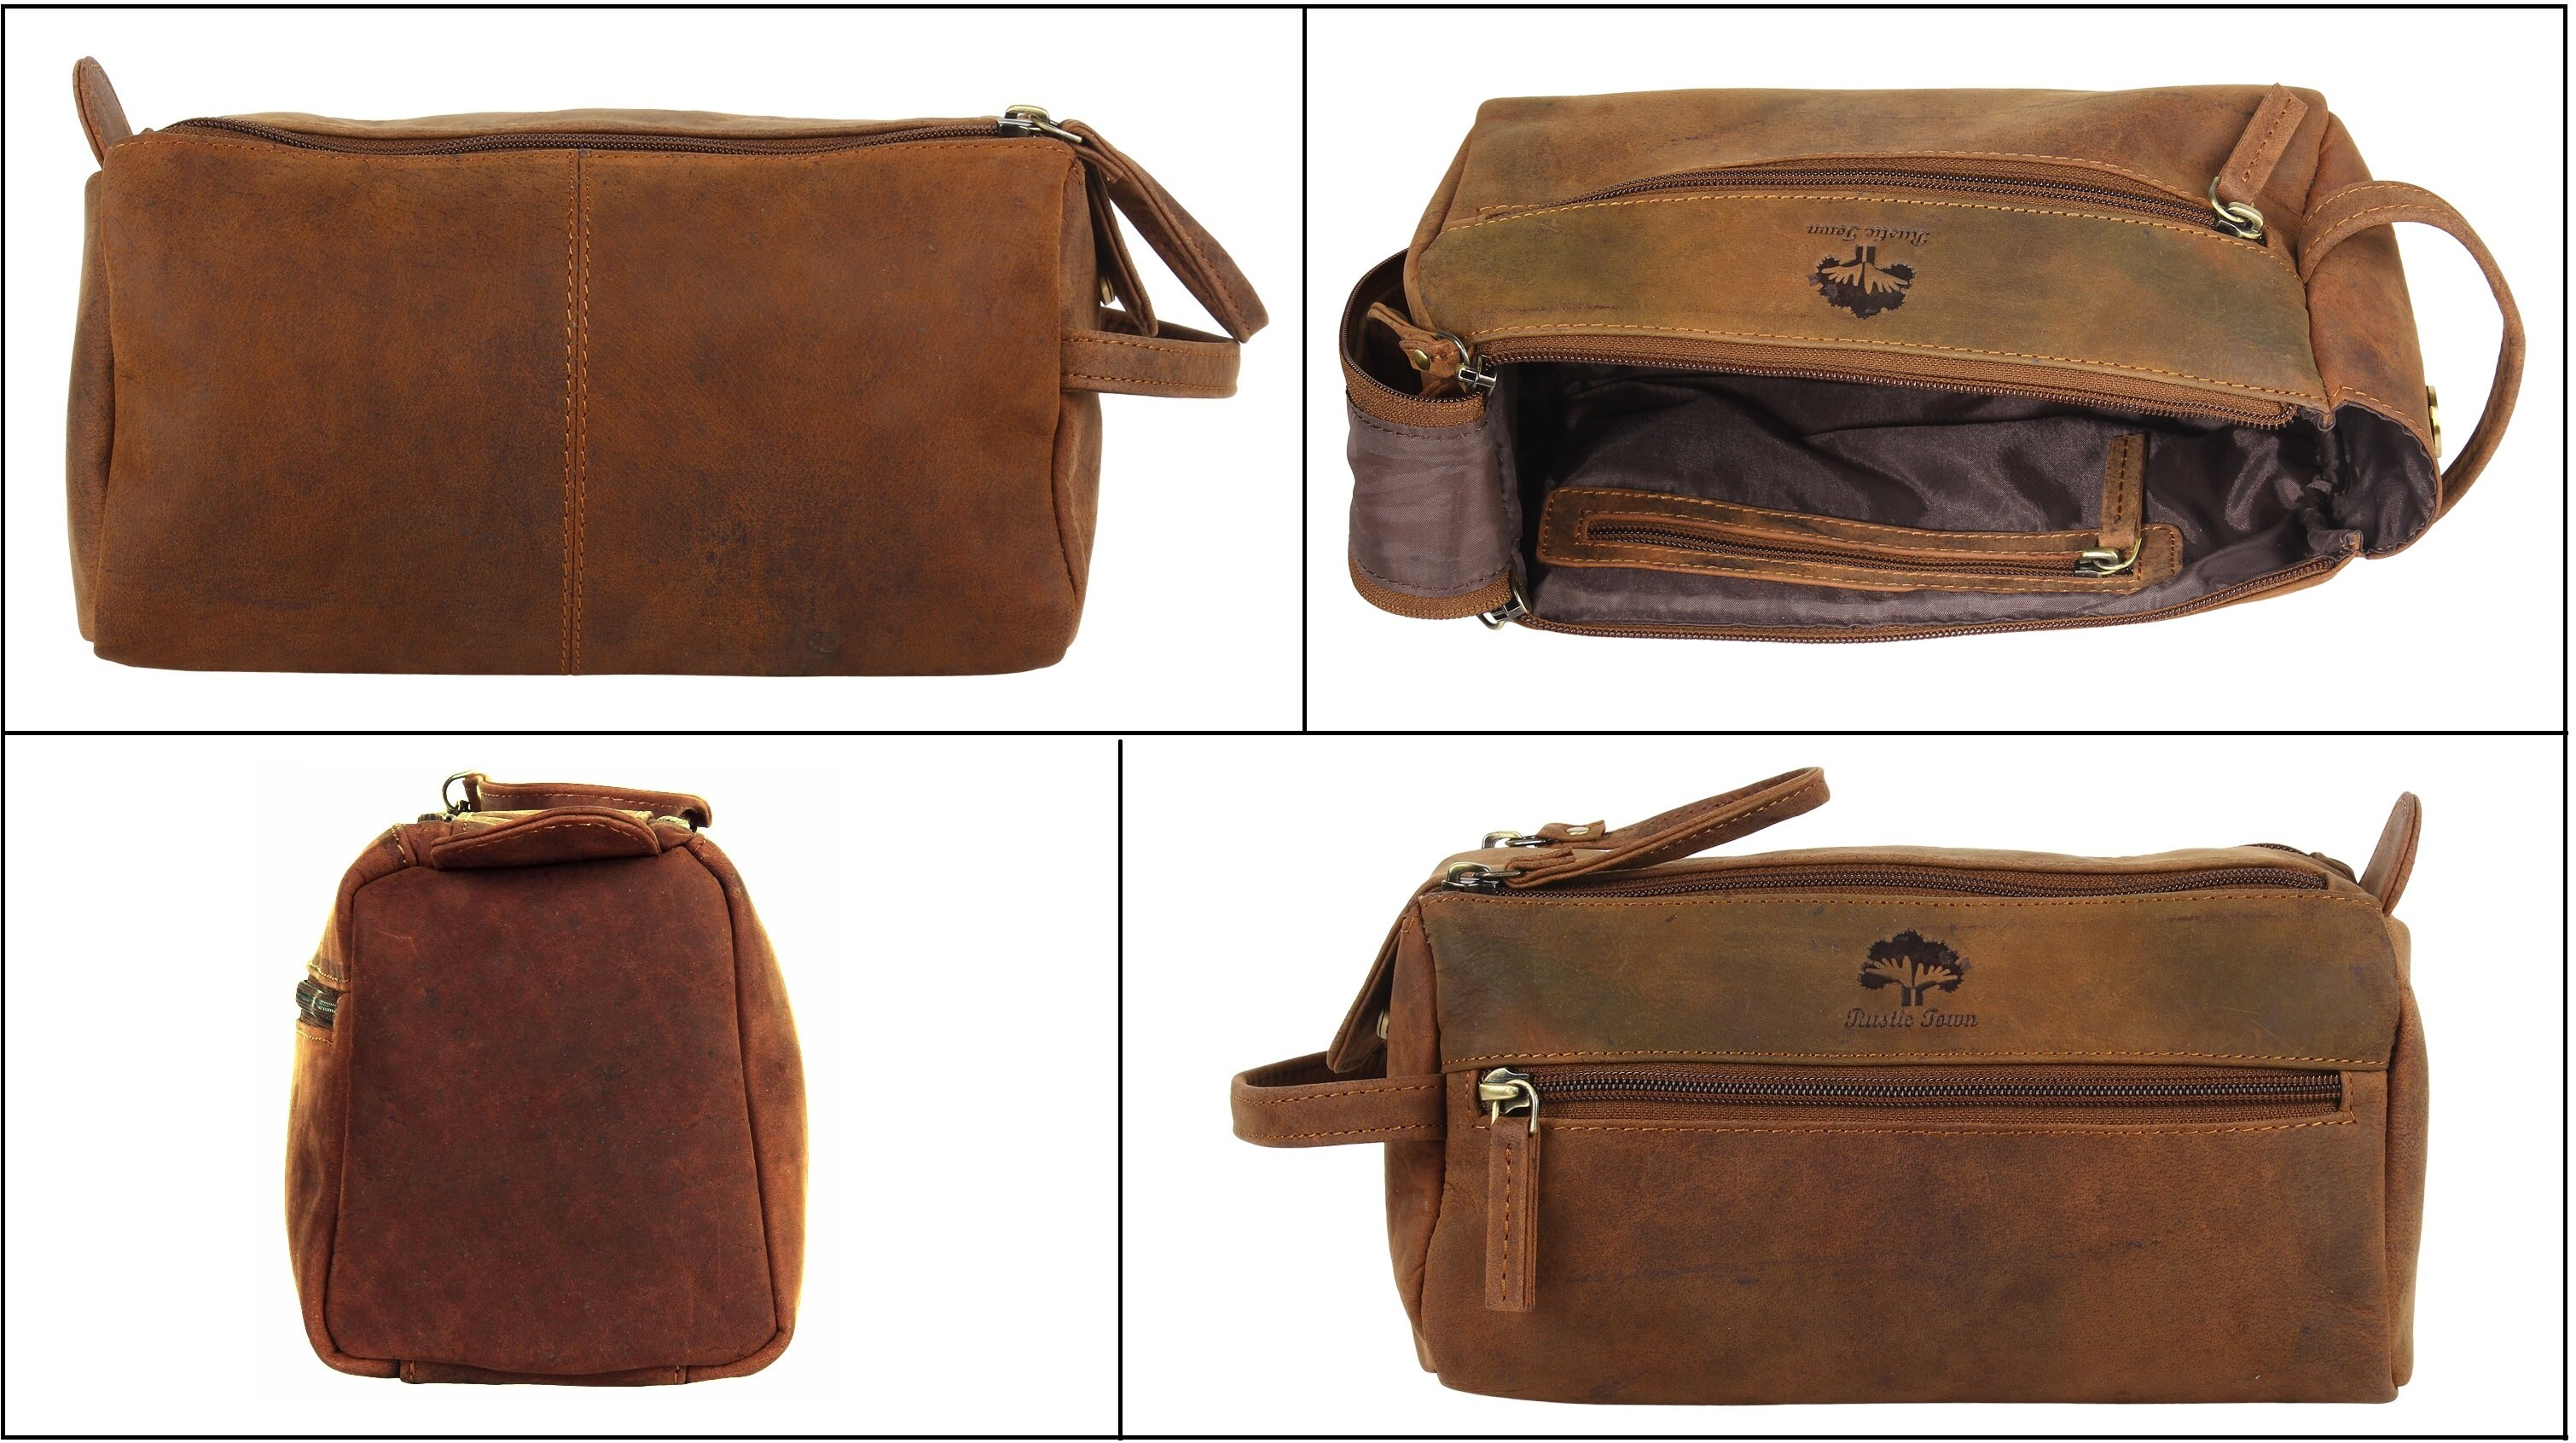 Rustic Town Handmade Buffalo Genuine Leather Toiletry Bag Dopp Kit Shaving And Grooming For Travel